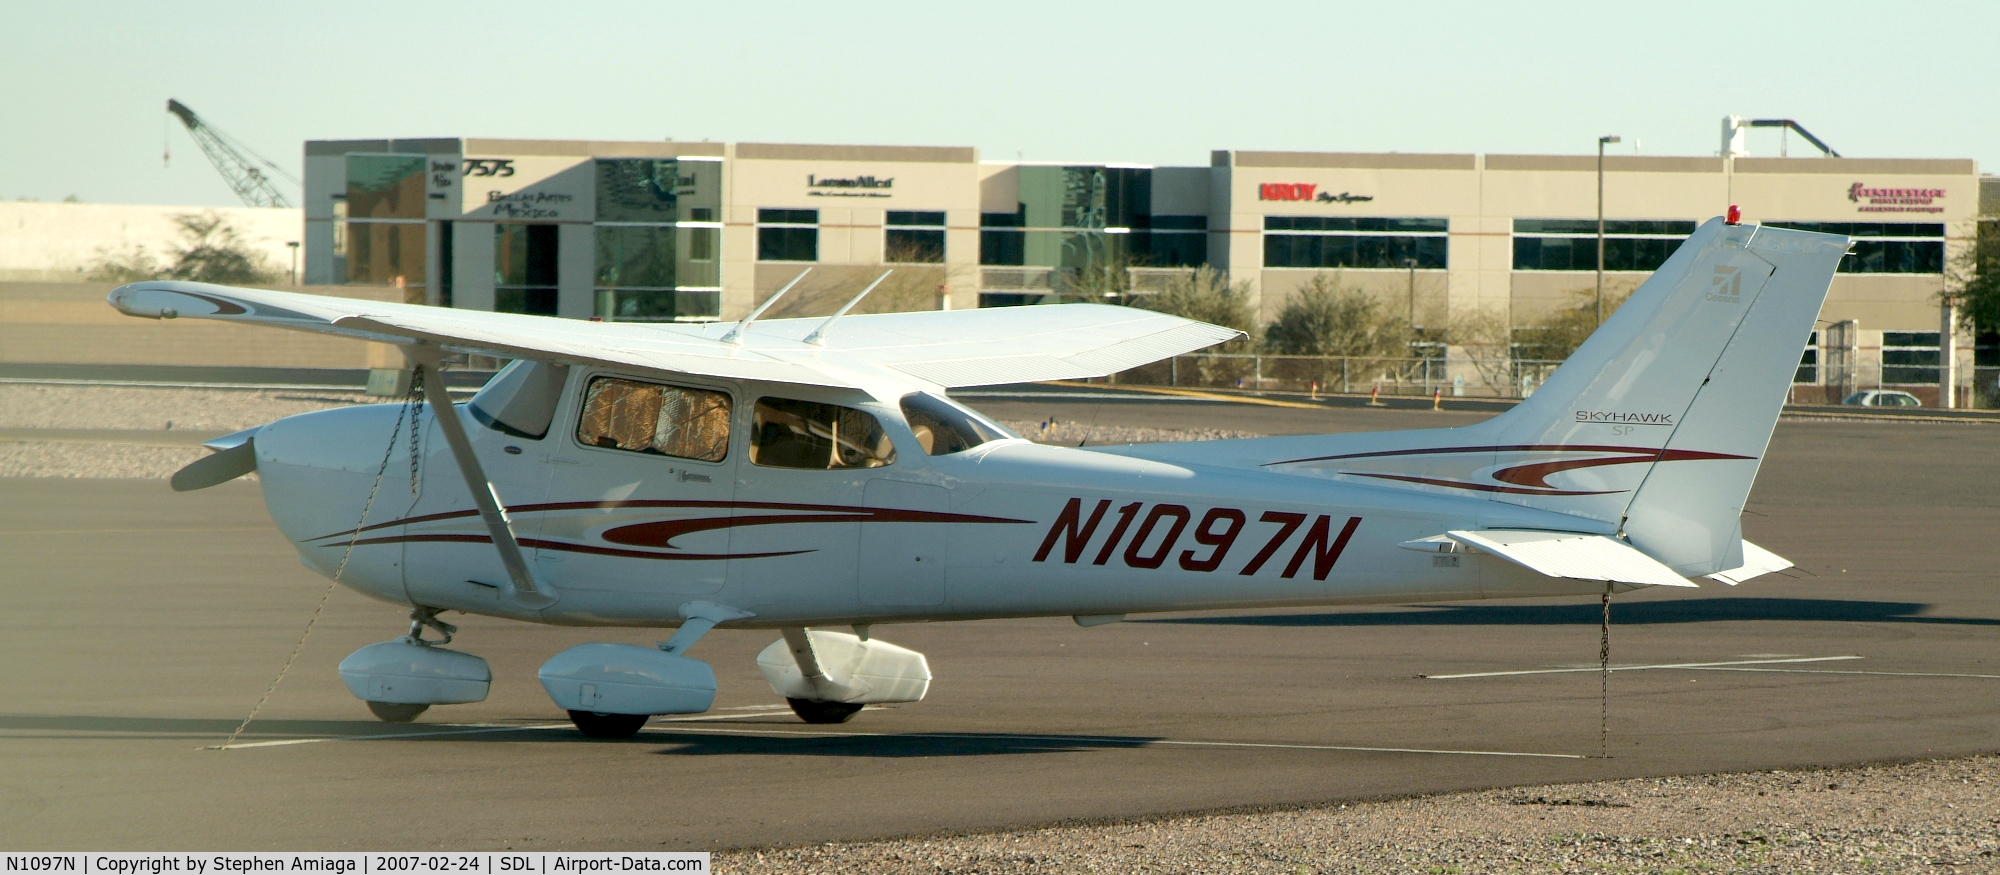 N1097N, 2005 Cessna 172S Skyhawk C/N 172S9821, Beautiful new Skyhawk...